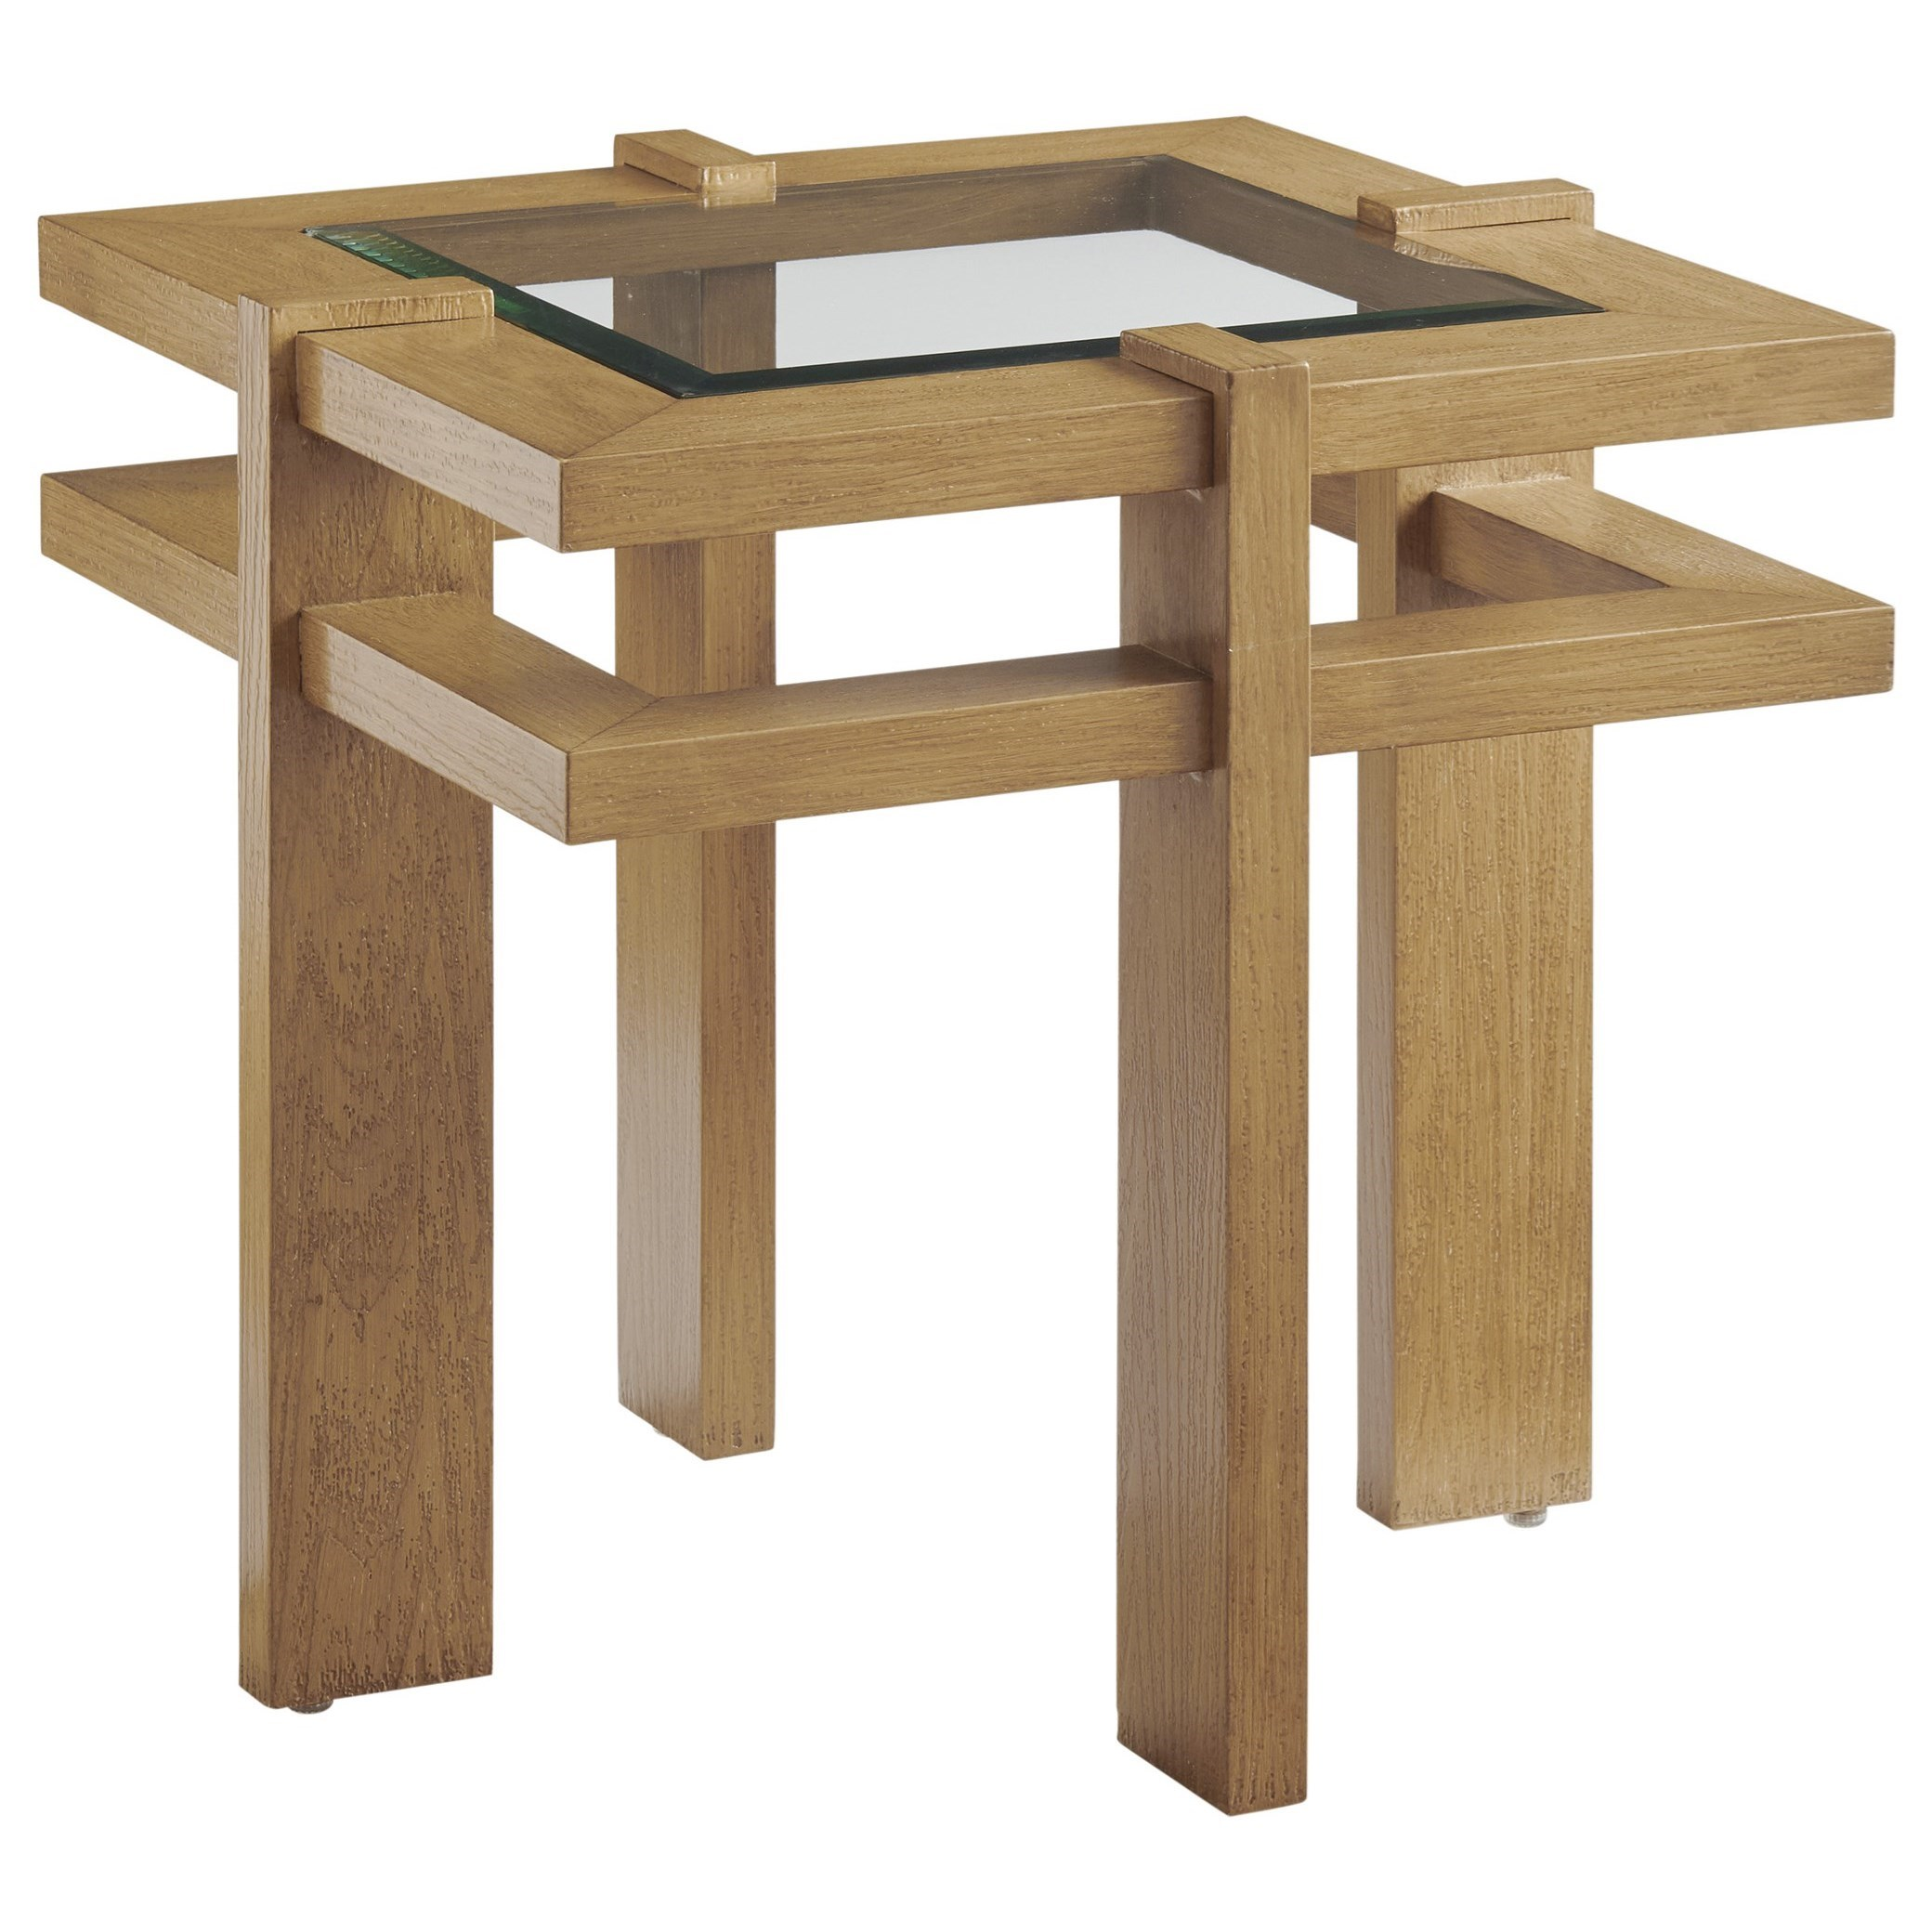 Los Altos Valley View Square End Table by Tommy Bahama Outdoor Living at Baer's Furniture